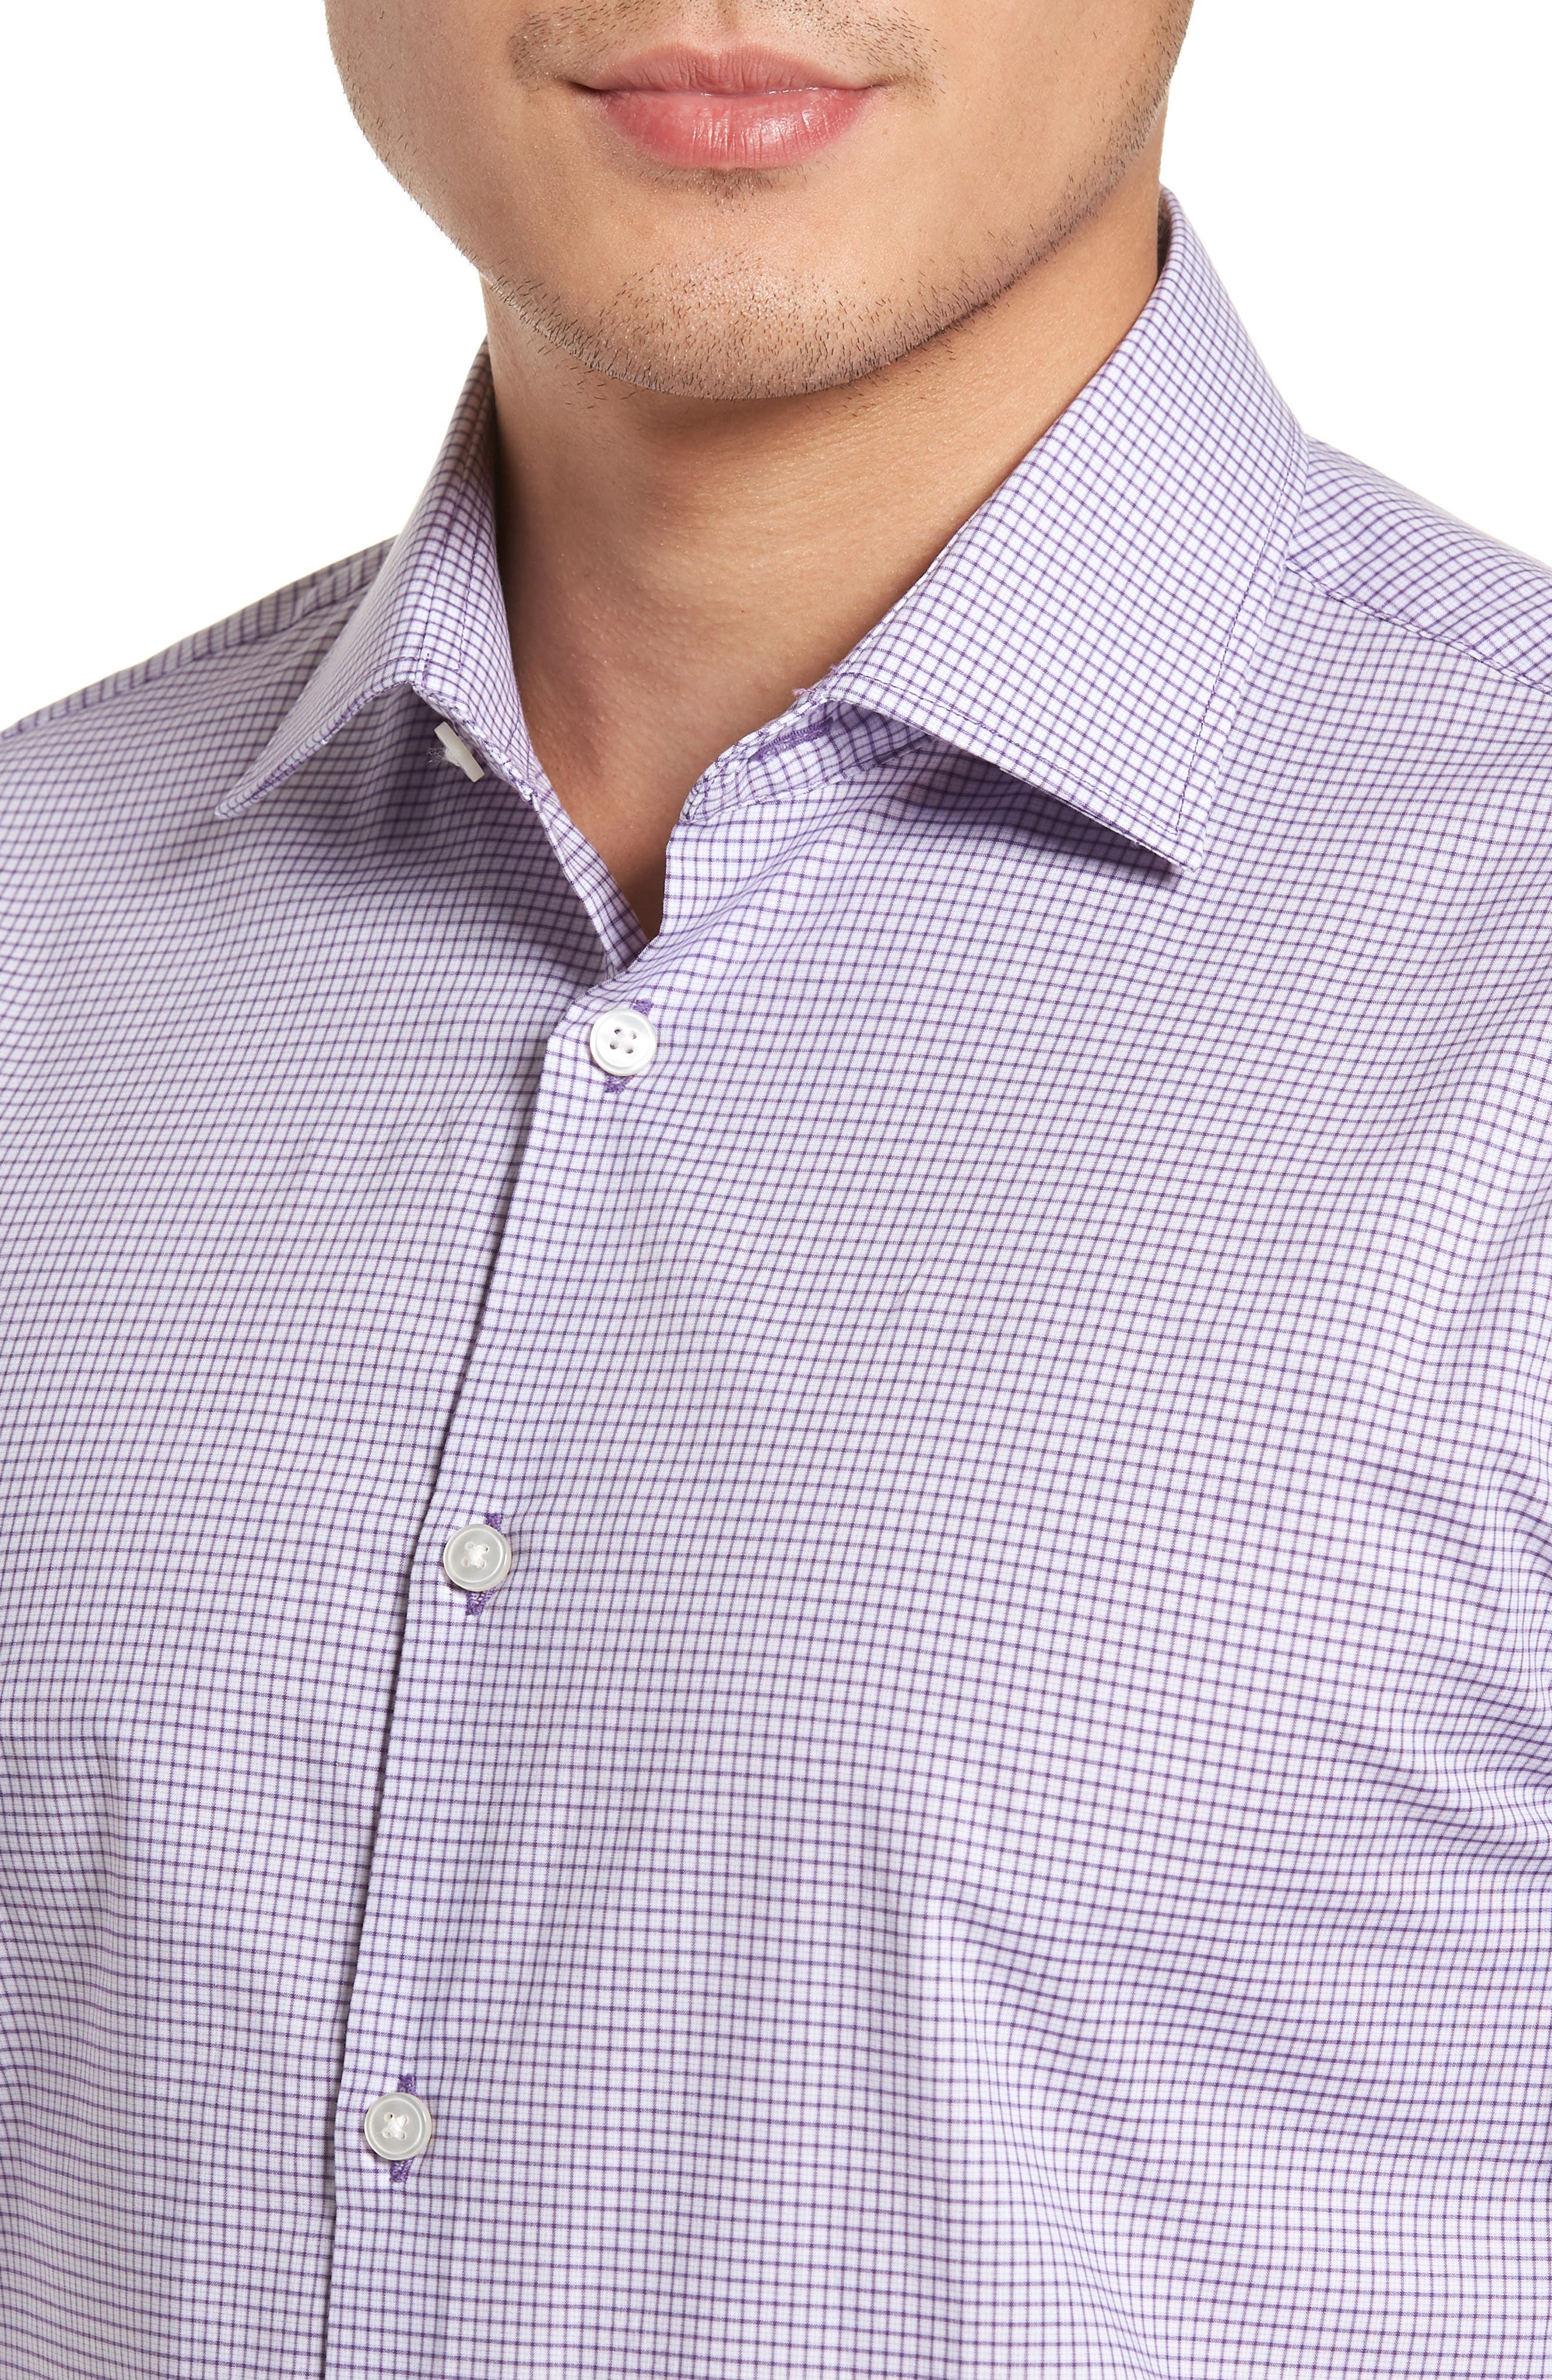 Regular Fit Stretch Check Dress Shirt,                             Alternate thumbnail 2, color,                             522